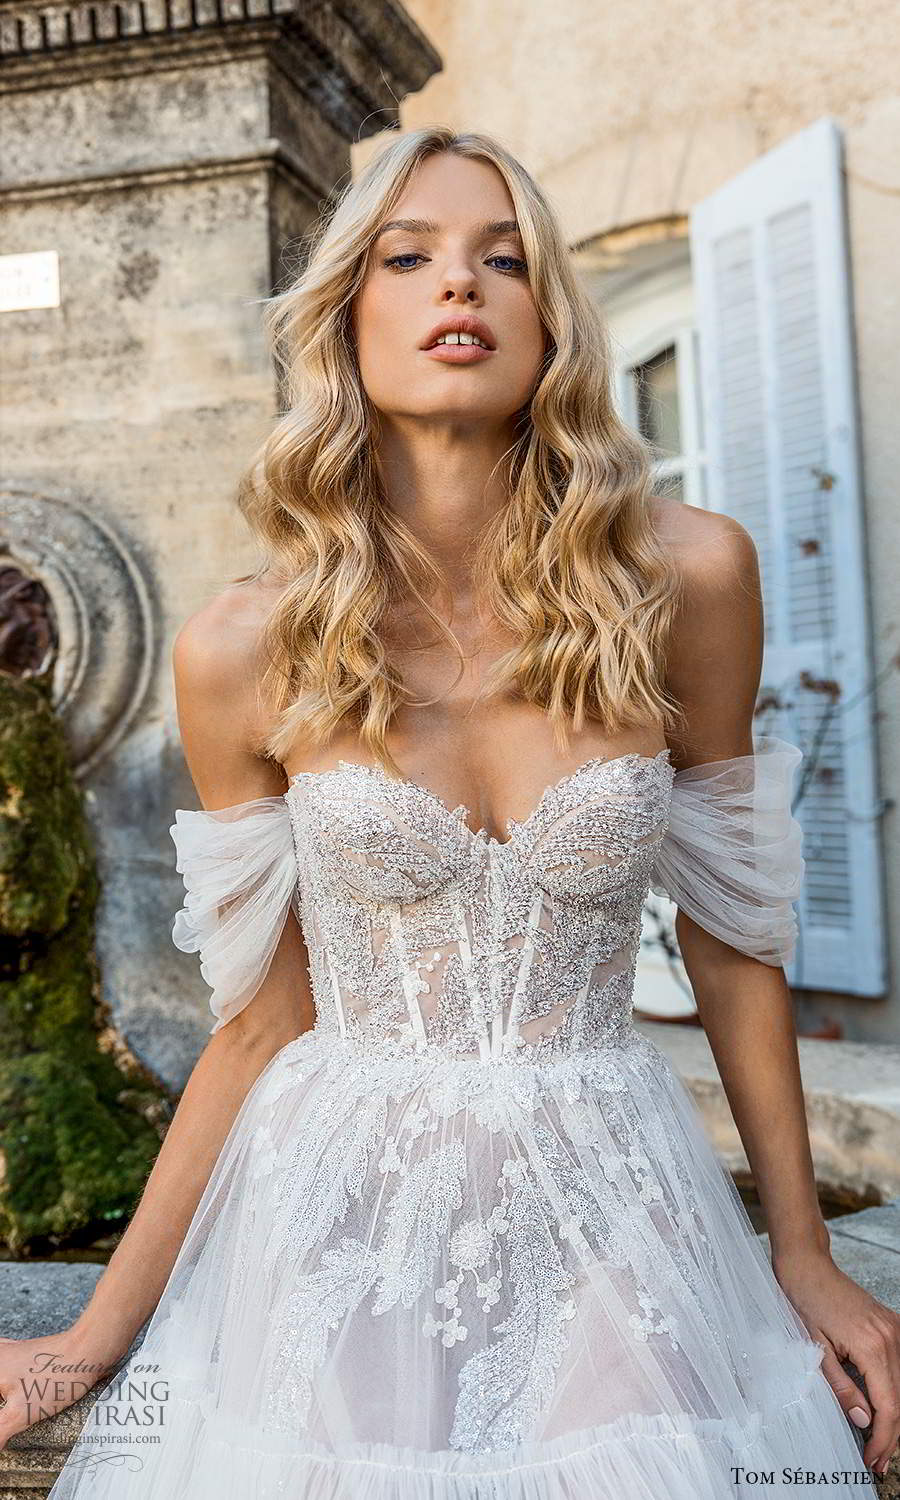 tom sebastien 2021 bridal provence off shoulder straps sweetheart neckline heavily embellished bodice a line ball gown wedding dress (5) zv